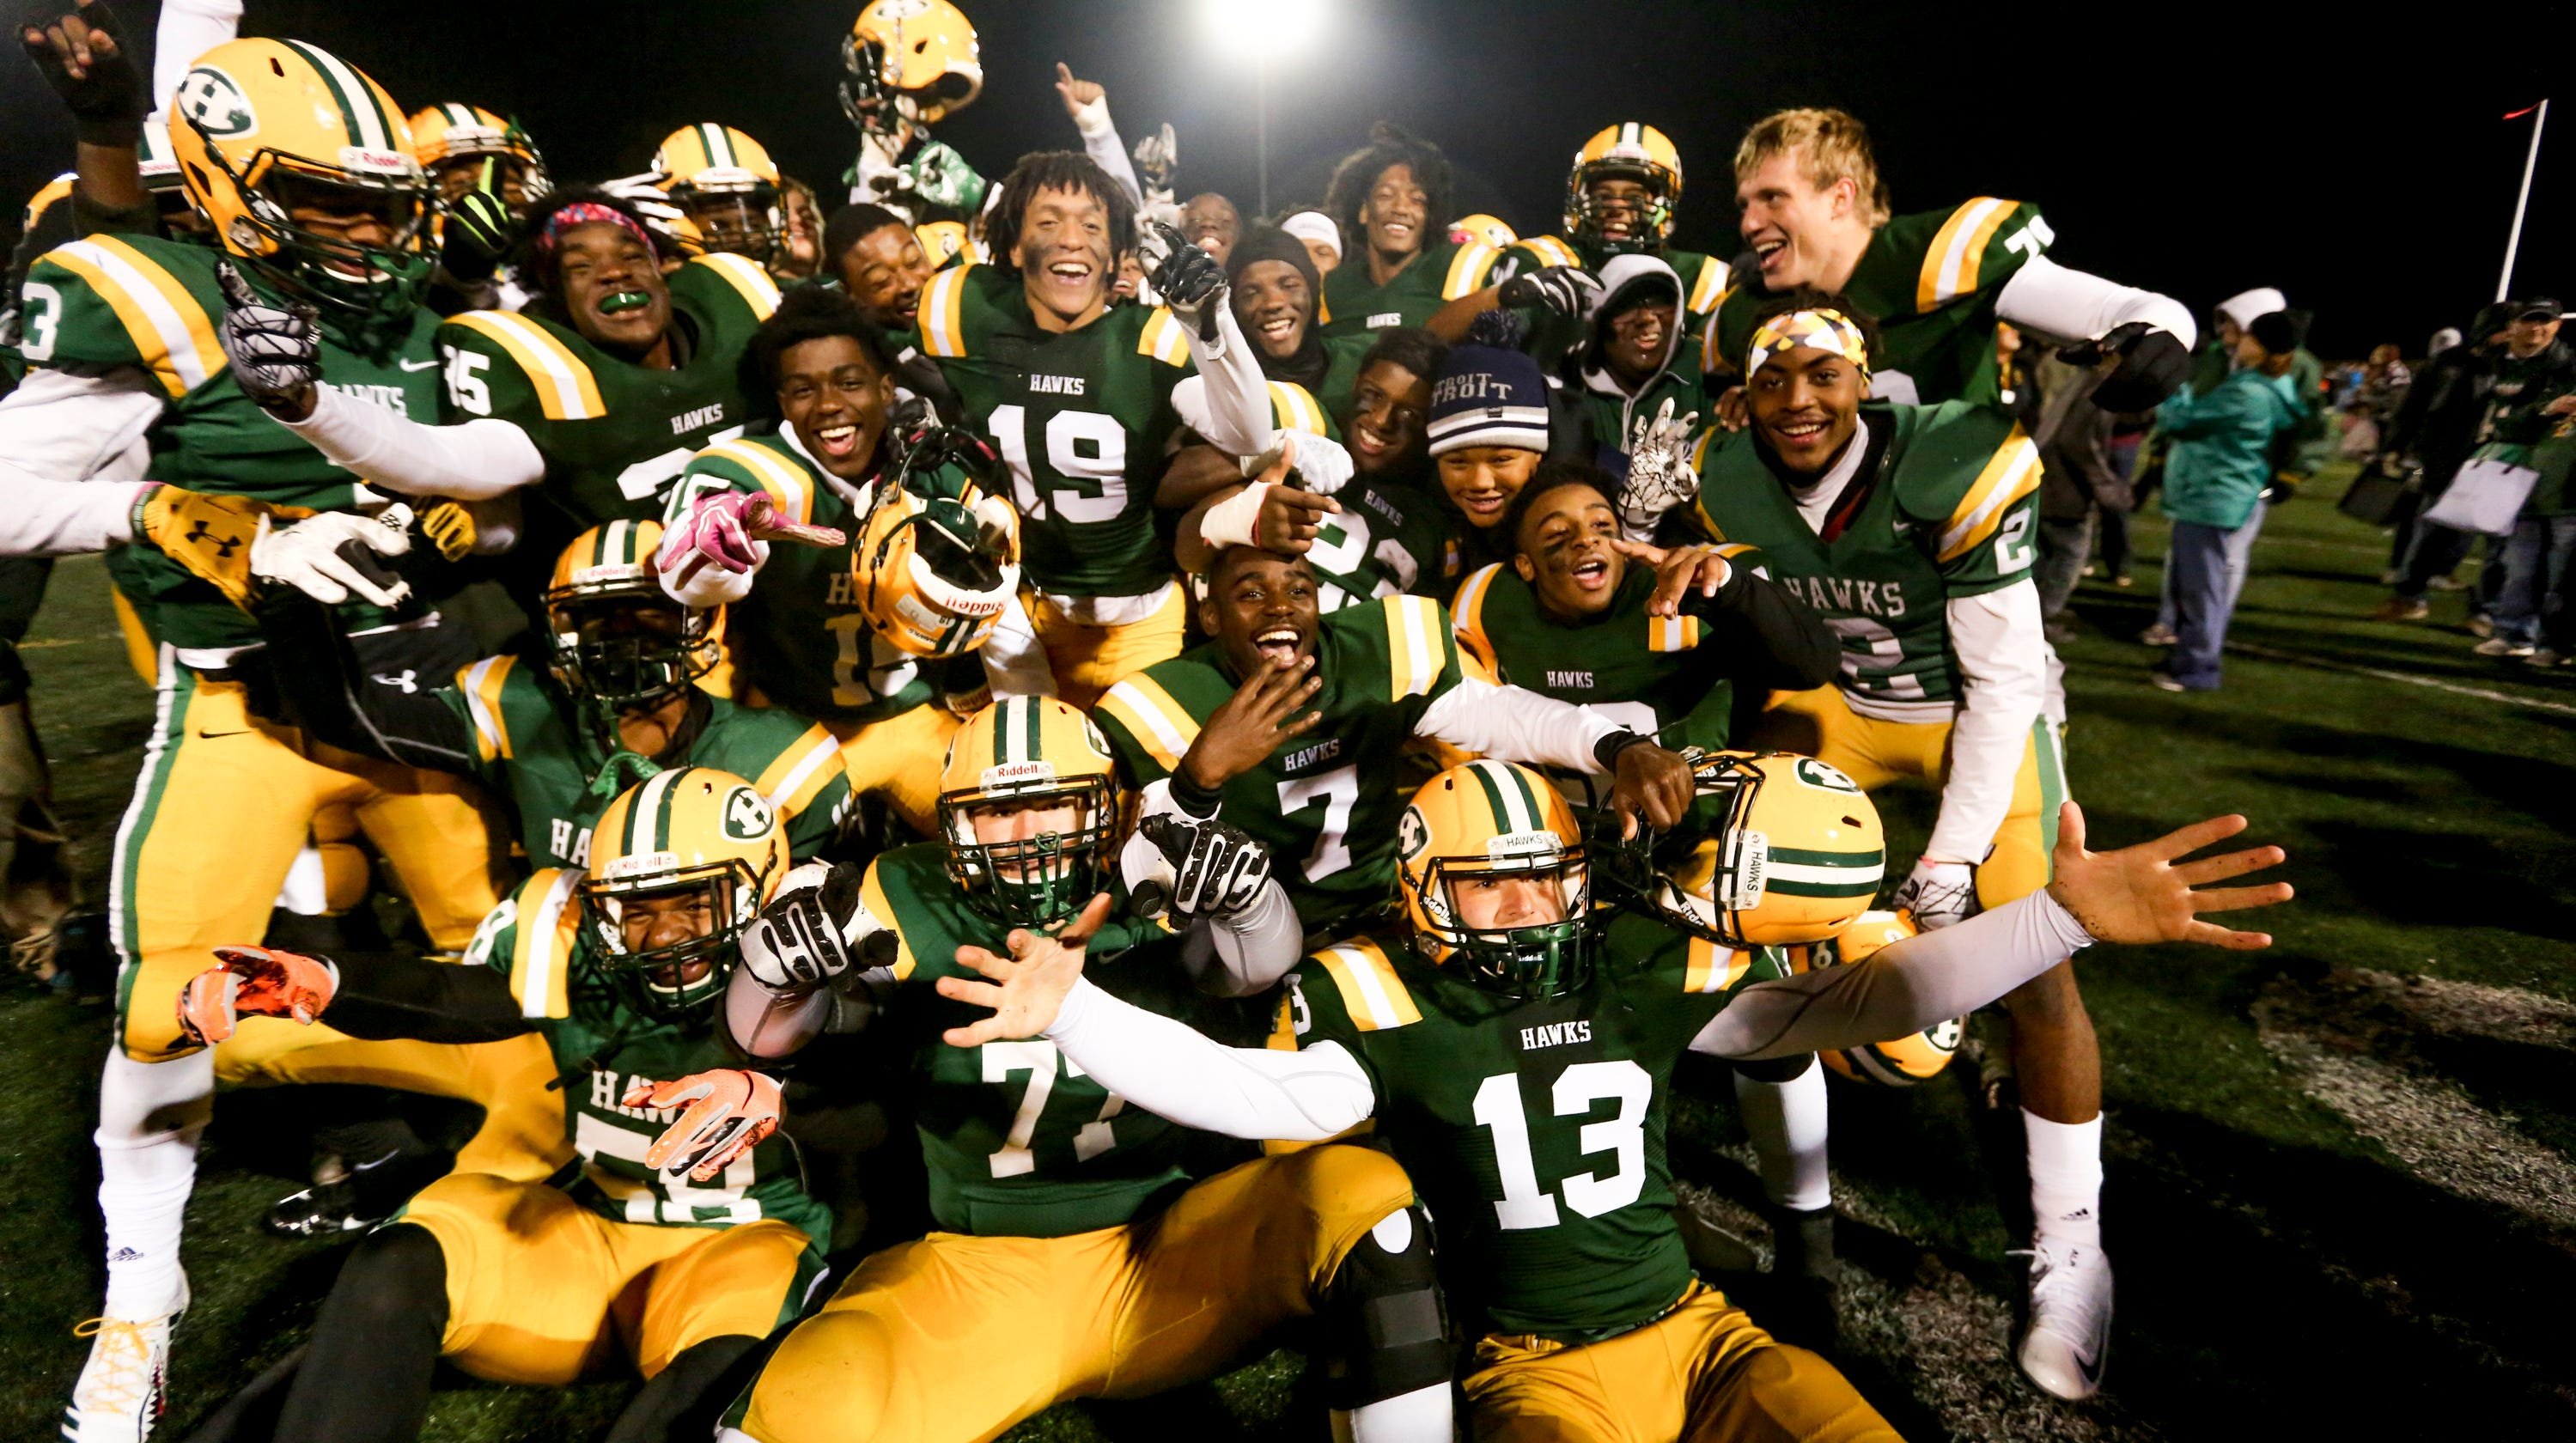 Farmington Hills Harrison celebrates Friday's 48-7 win over Farmington, which enabled Harrison to secure a state playoff spot in its final year.